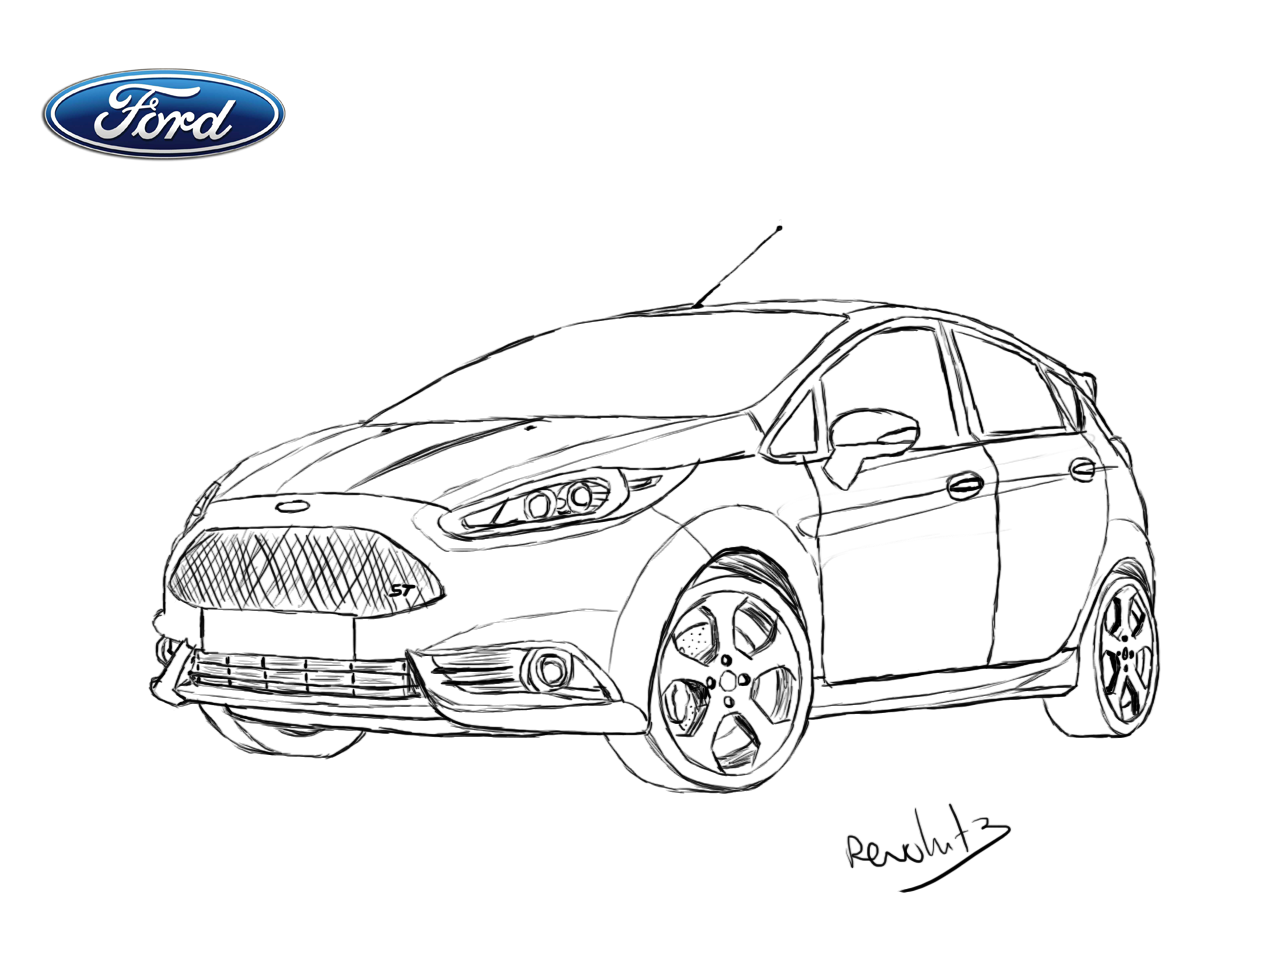 Ford F150 Coloring Pages as well How To Draw A Lamborghini Gallardo Side View additionally Coloring Book Of Race Cars For The Little Motorist Photo Gallery 72324 also 2005 Nissan Altima Wiring Diagram as well 324918 Oem Plenum Intake Manifold Bolt Sizes Vq35de. on 2013 nissan skyline